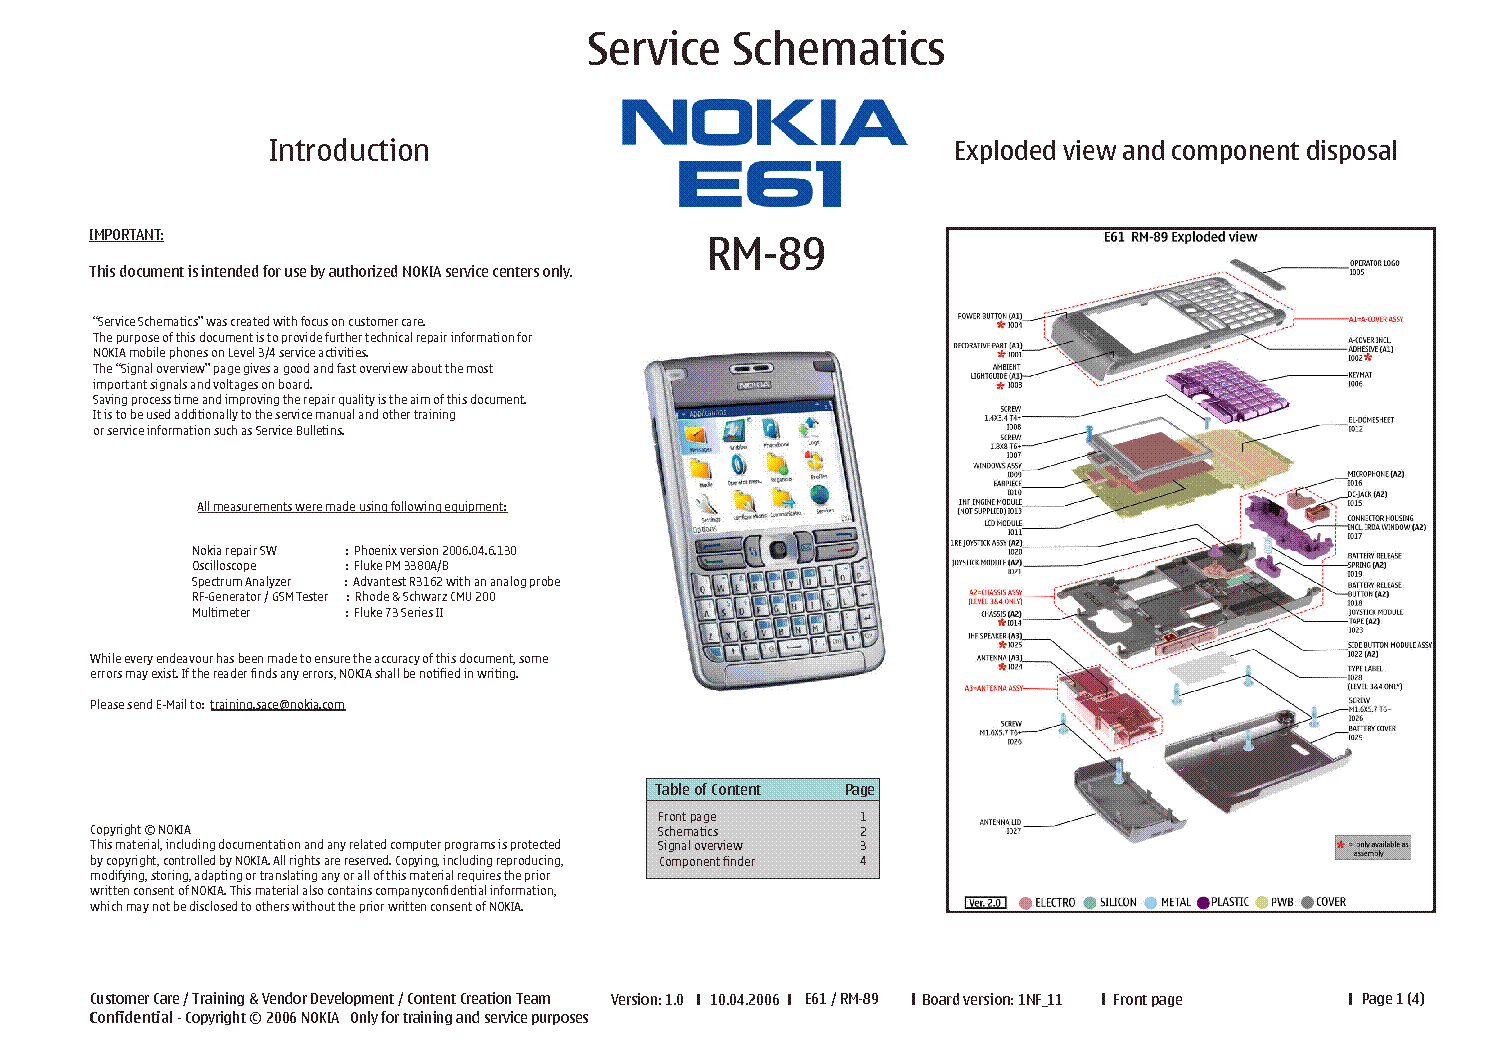 nokia e61 rm 89 service schematics service manual download rh elektrotanya com nokia e61 service manual nokia e61 service manual